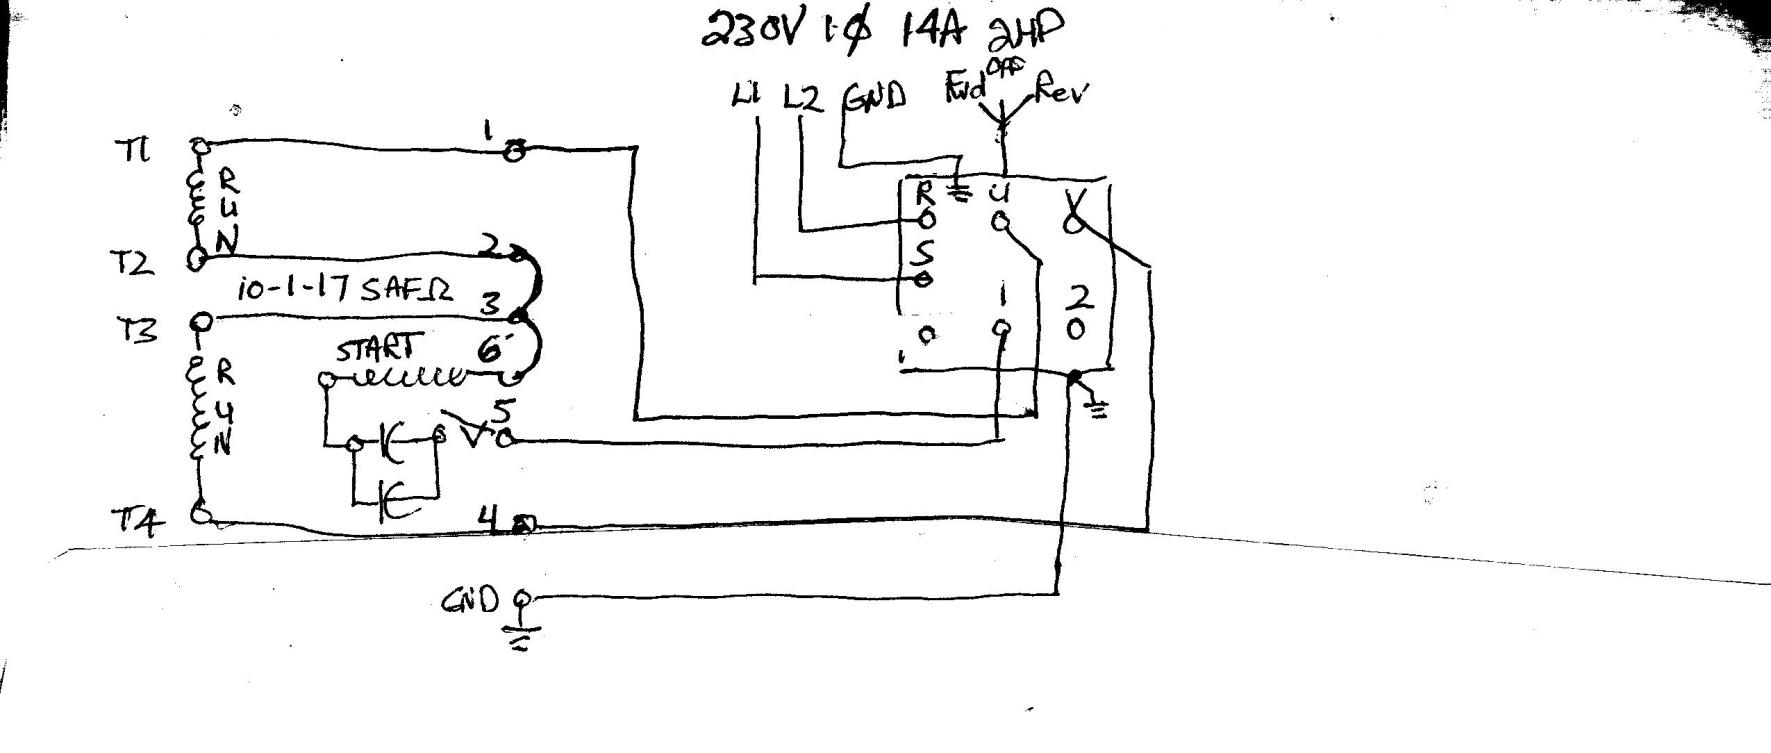 need help wiring single phase lathe